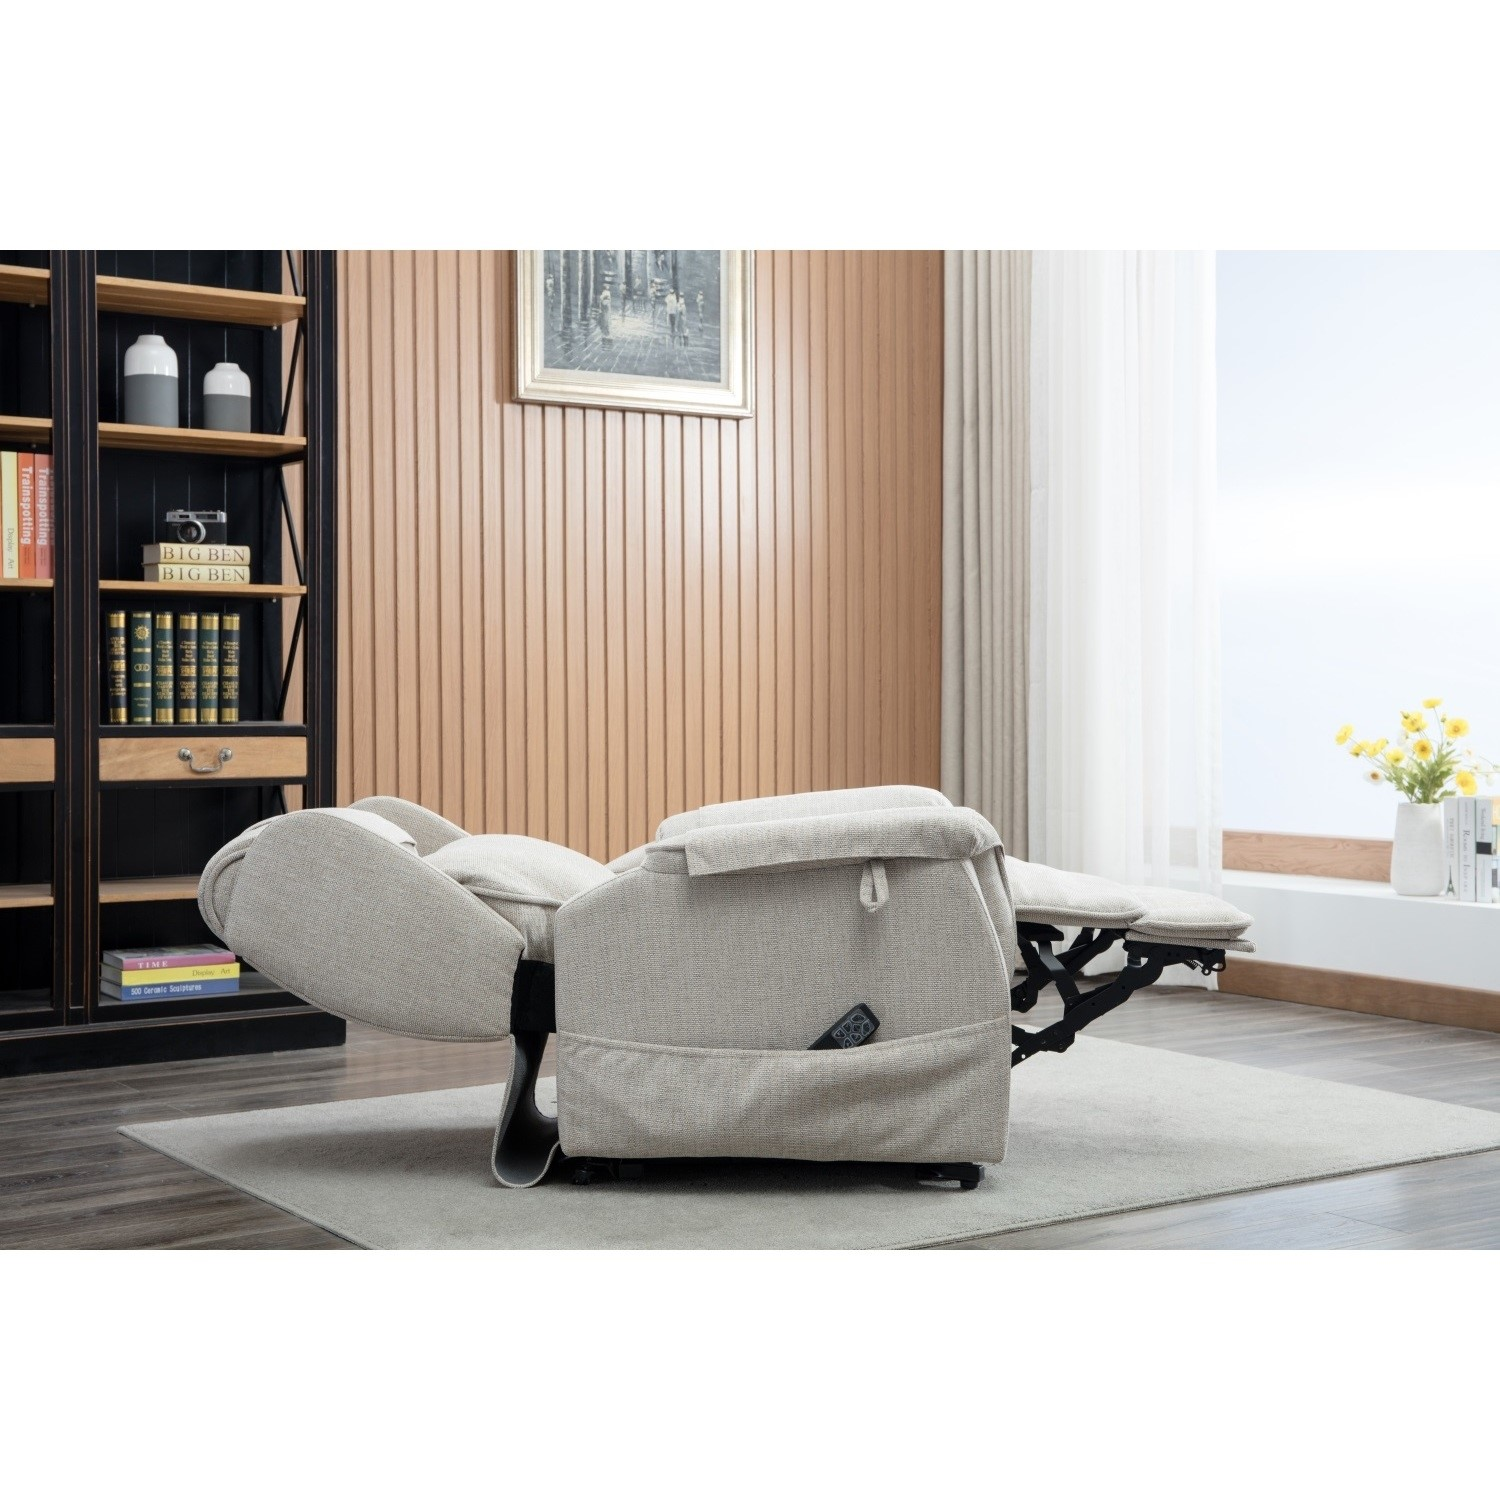 Ascot Cream Fabric Riser Recliner Chair With Remote Control Lillie Sand